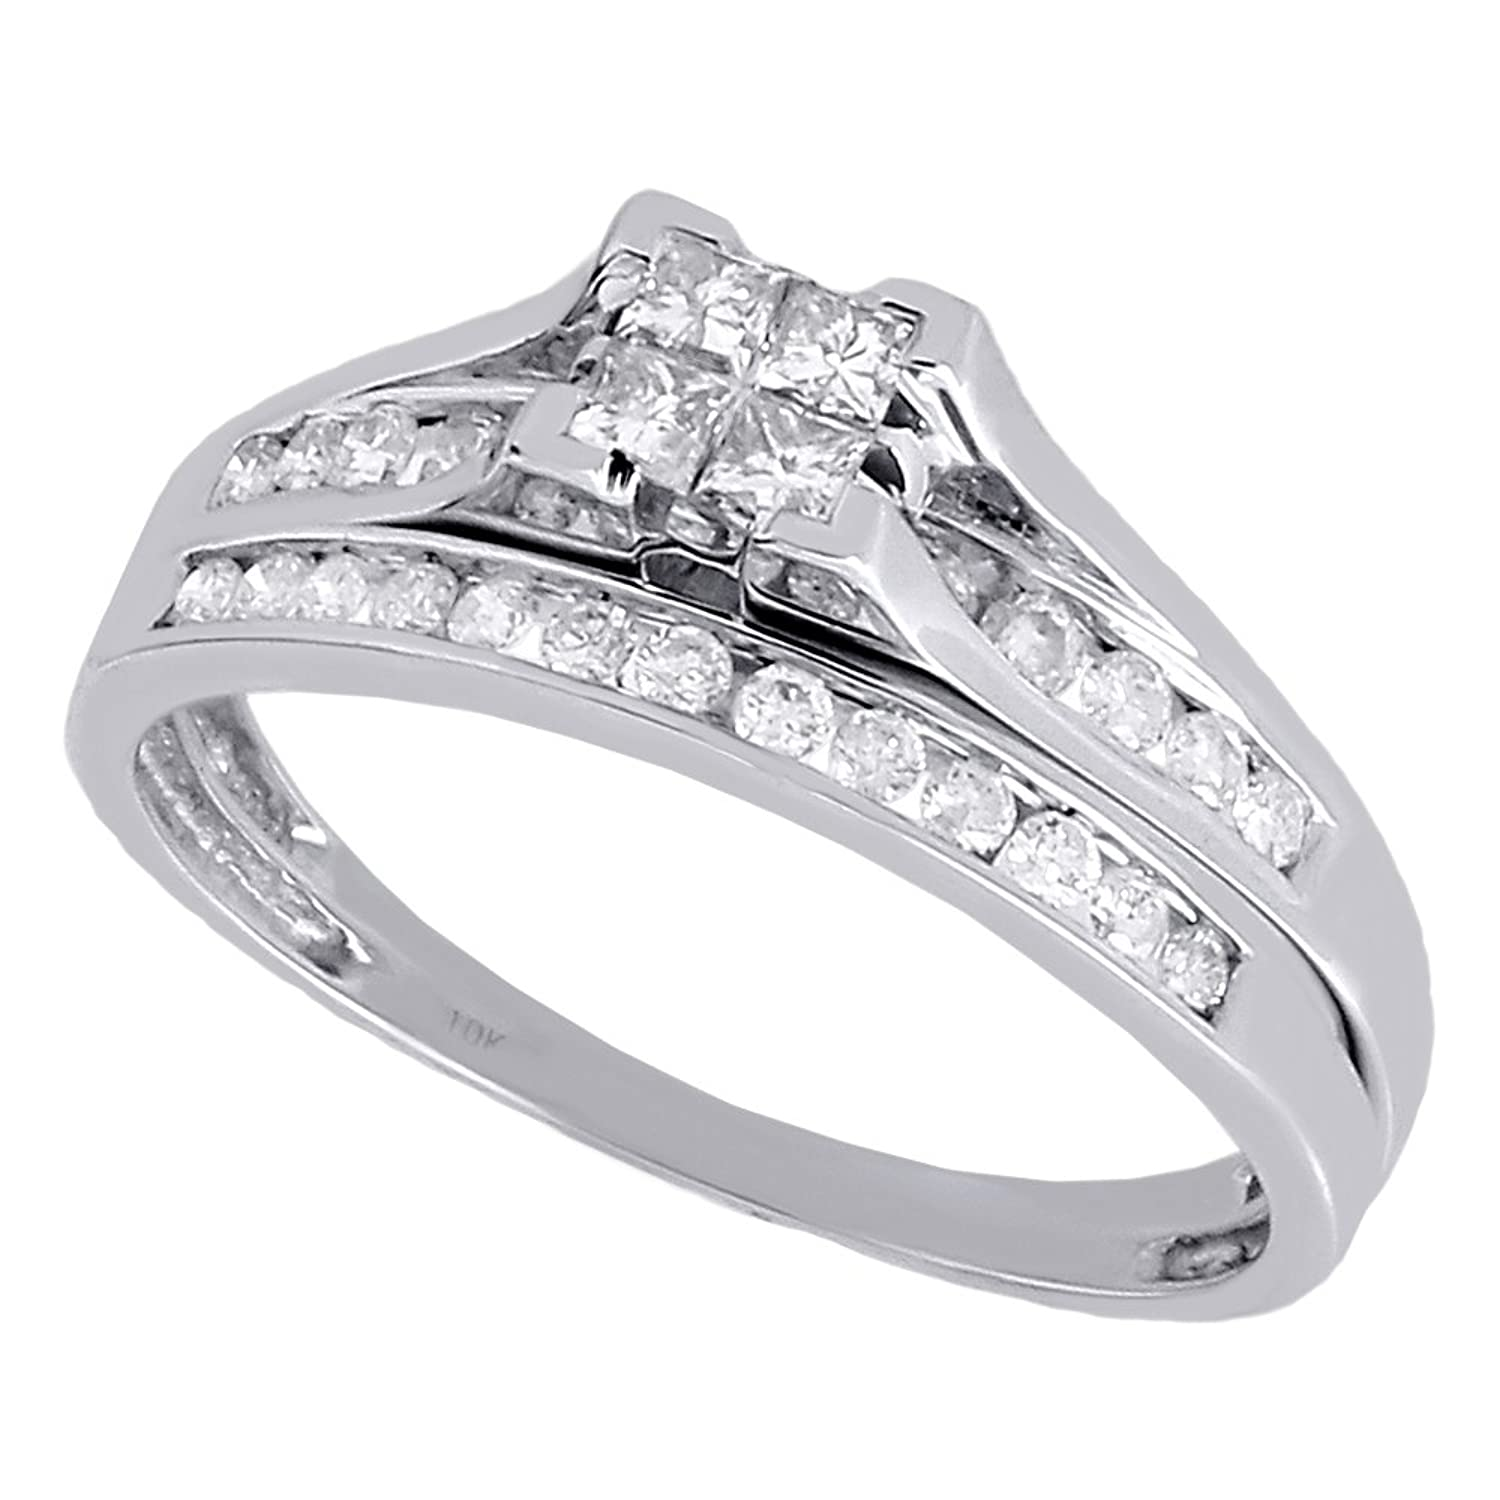 couples square diamond platinum amp carat solitaire seven engagement for and bands ring mens round her cost settings band white shop karat rings women wedding gold stone sapphire